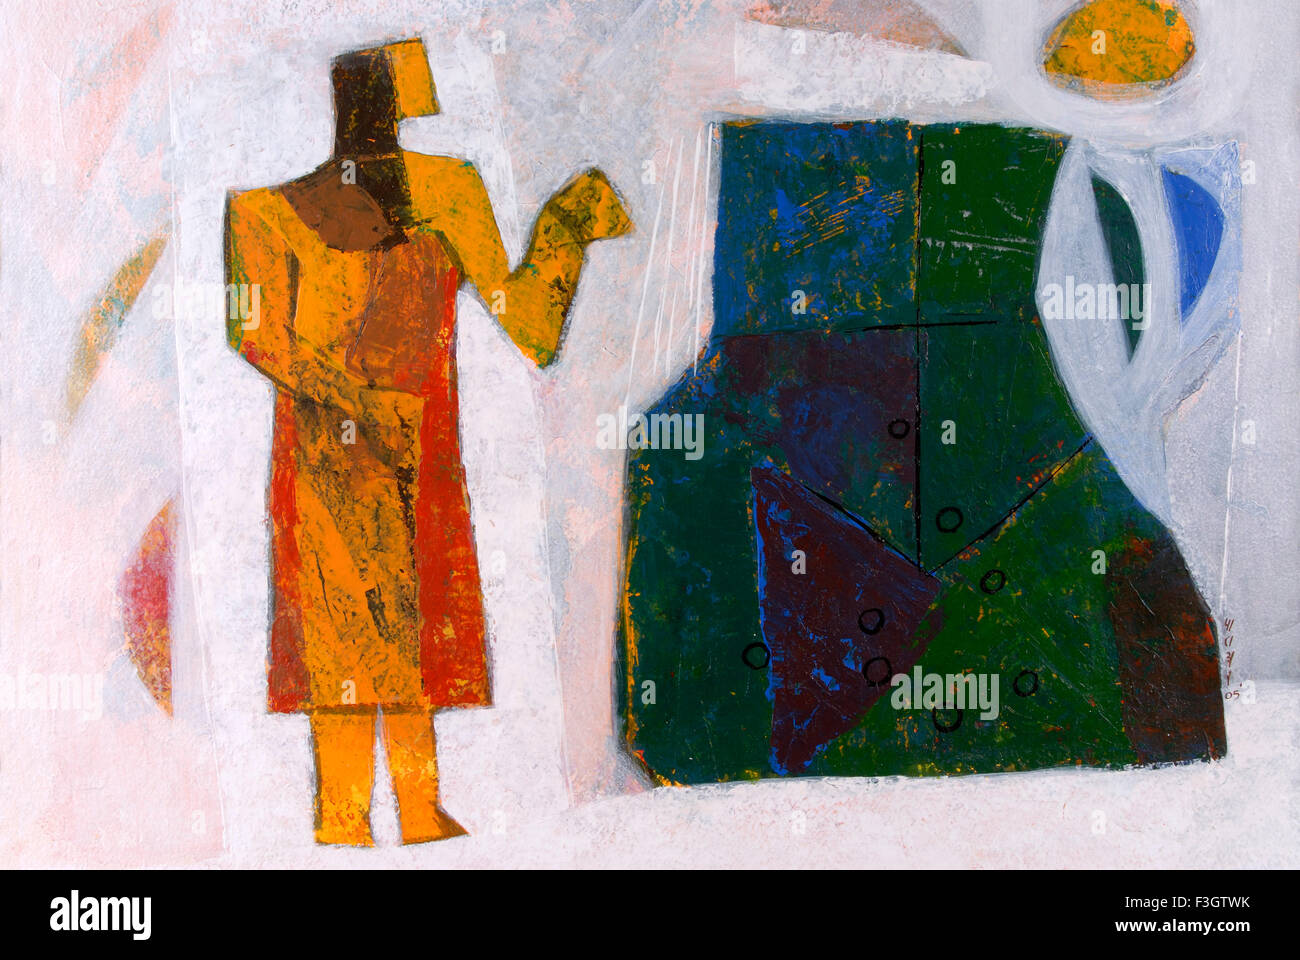 Man with his day today garbage acrylic colors on handmade paper - Stock Image